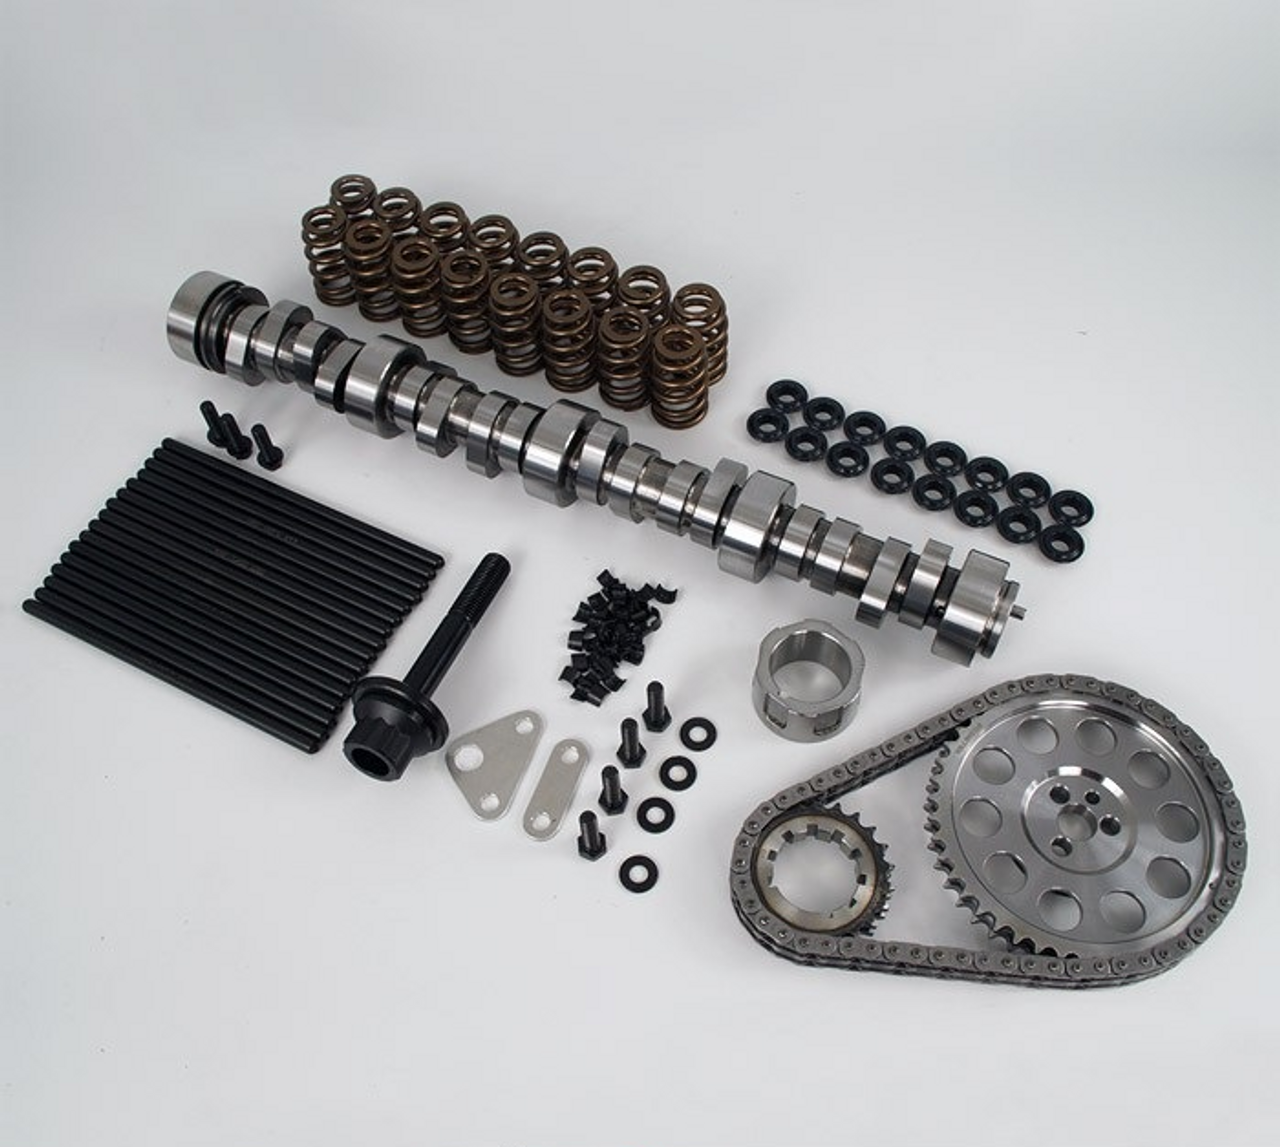 Btr Ls2 Stage Iii Camshaft Package No Timing Chain Set Lsx Performance Parts